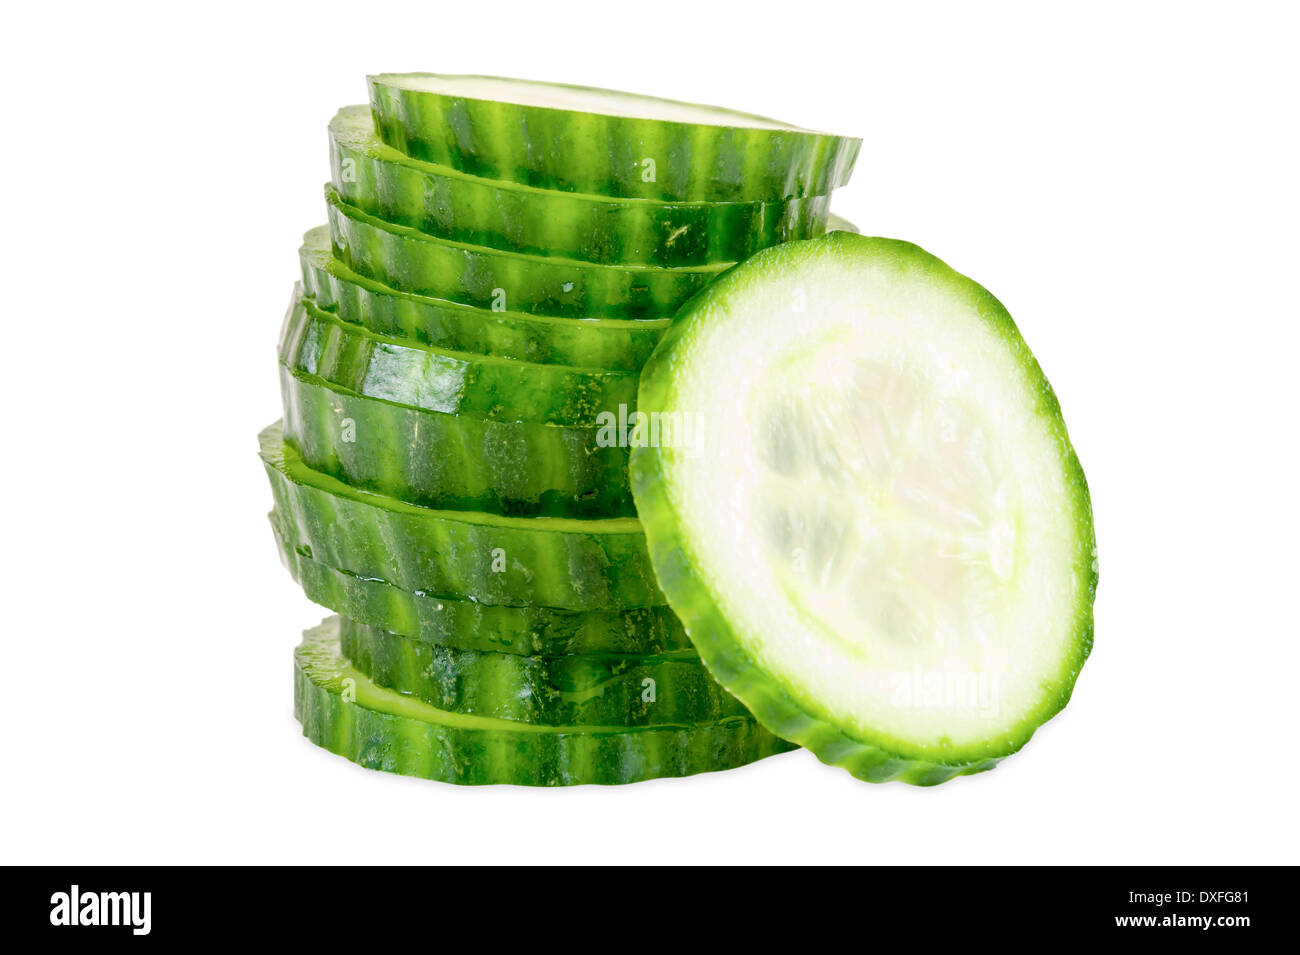 Stack of cucumber slices isolated on white background with clipping path - Stock Image